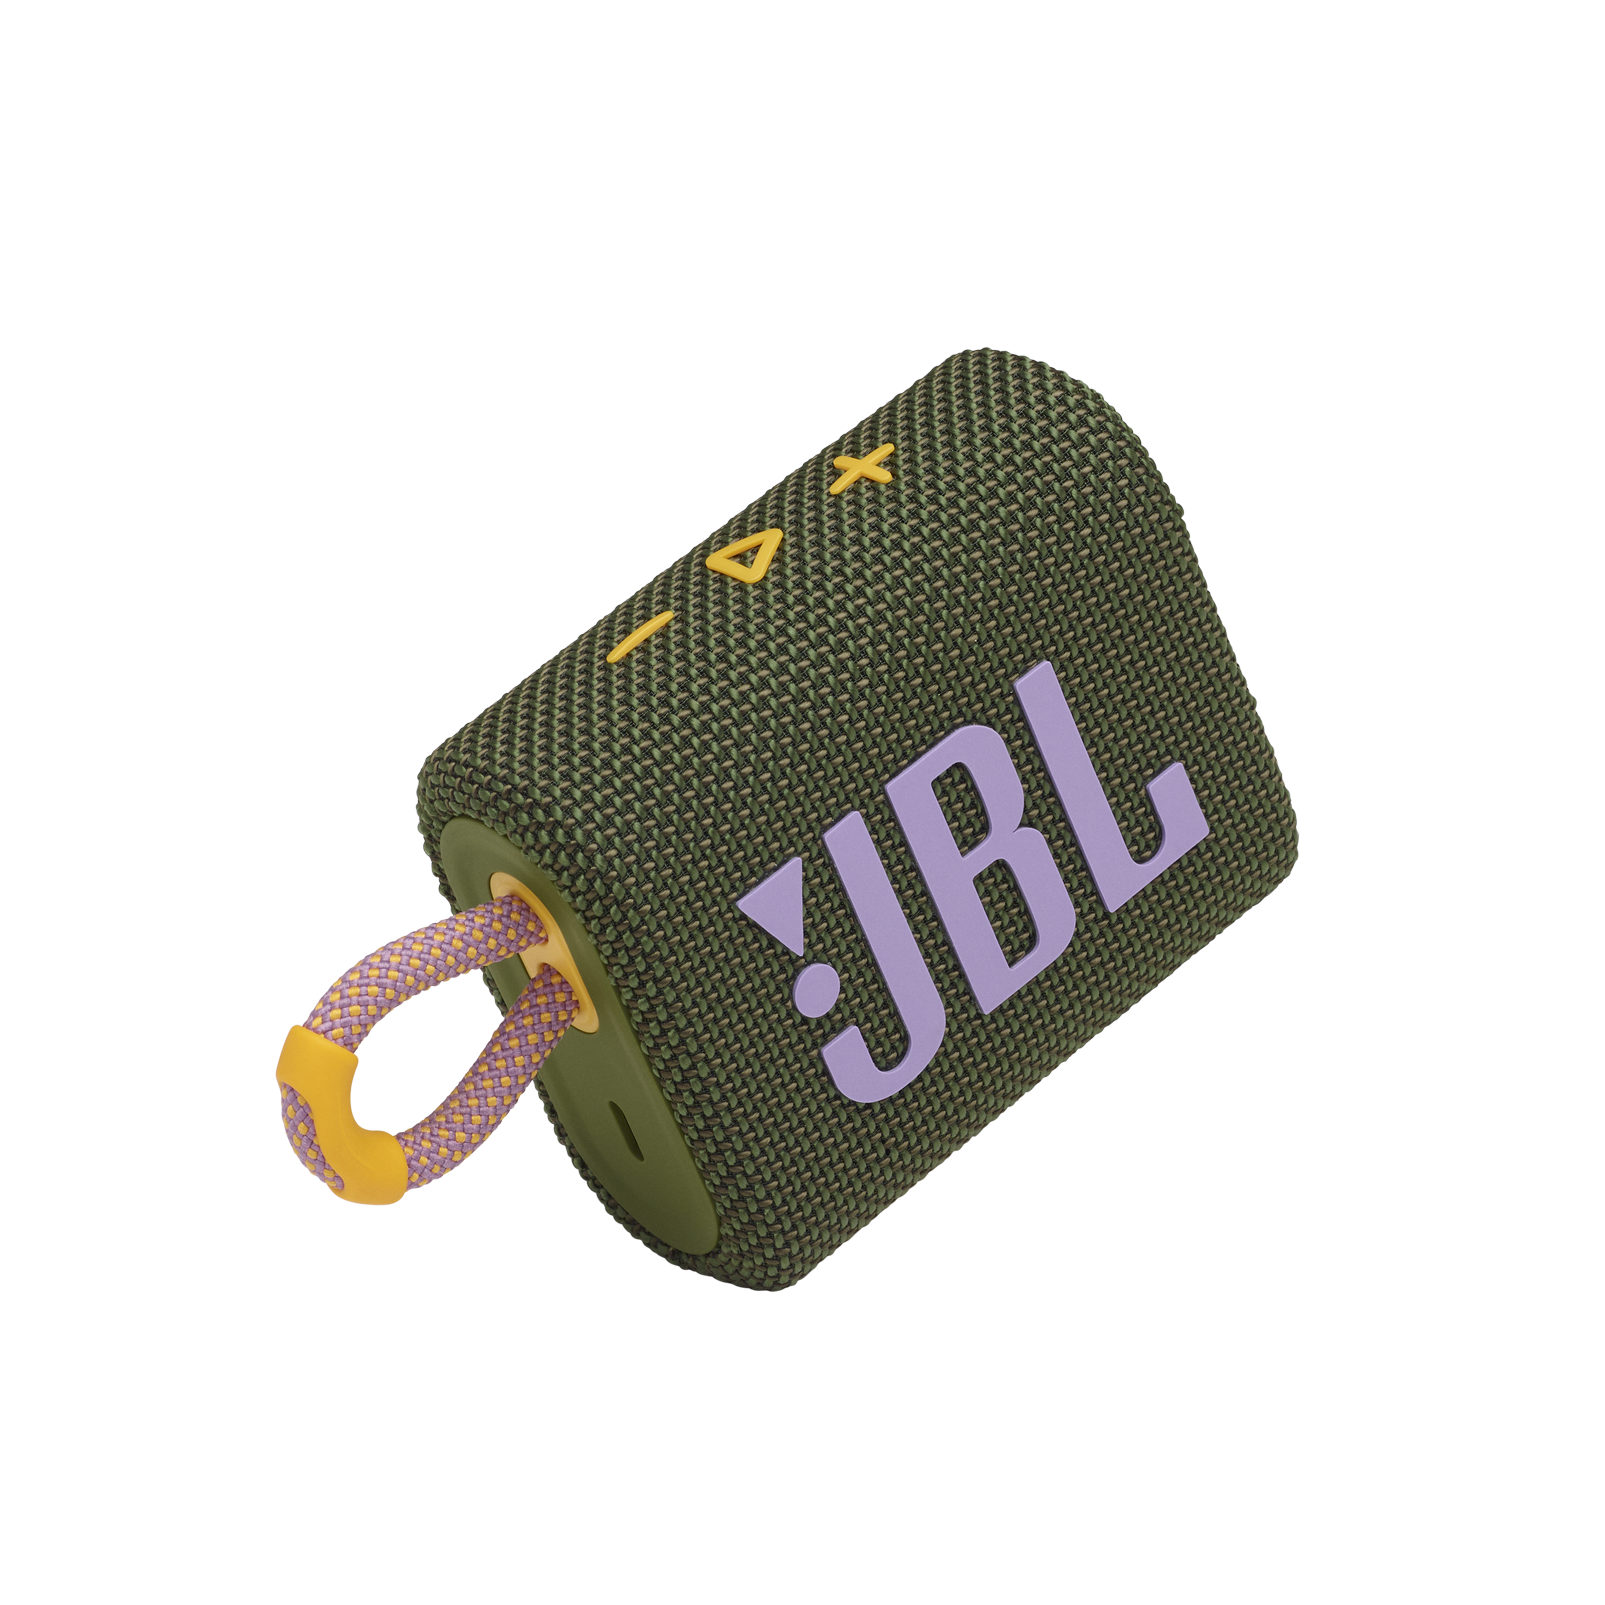 JBL GO 3 - Green - Portable Waterproof Speaker - Detailshot 1